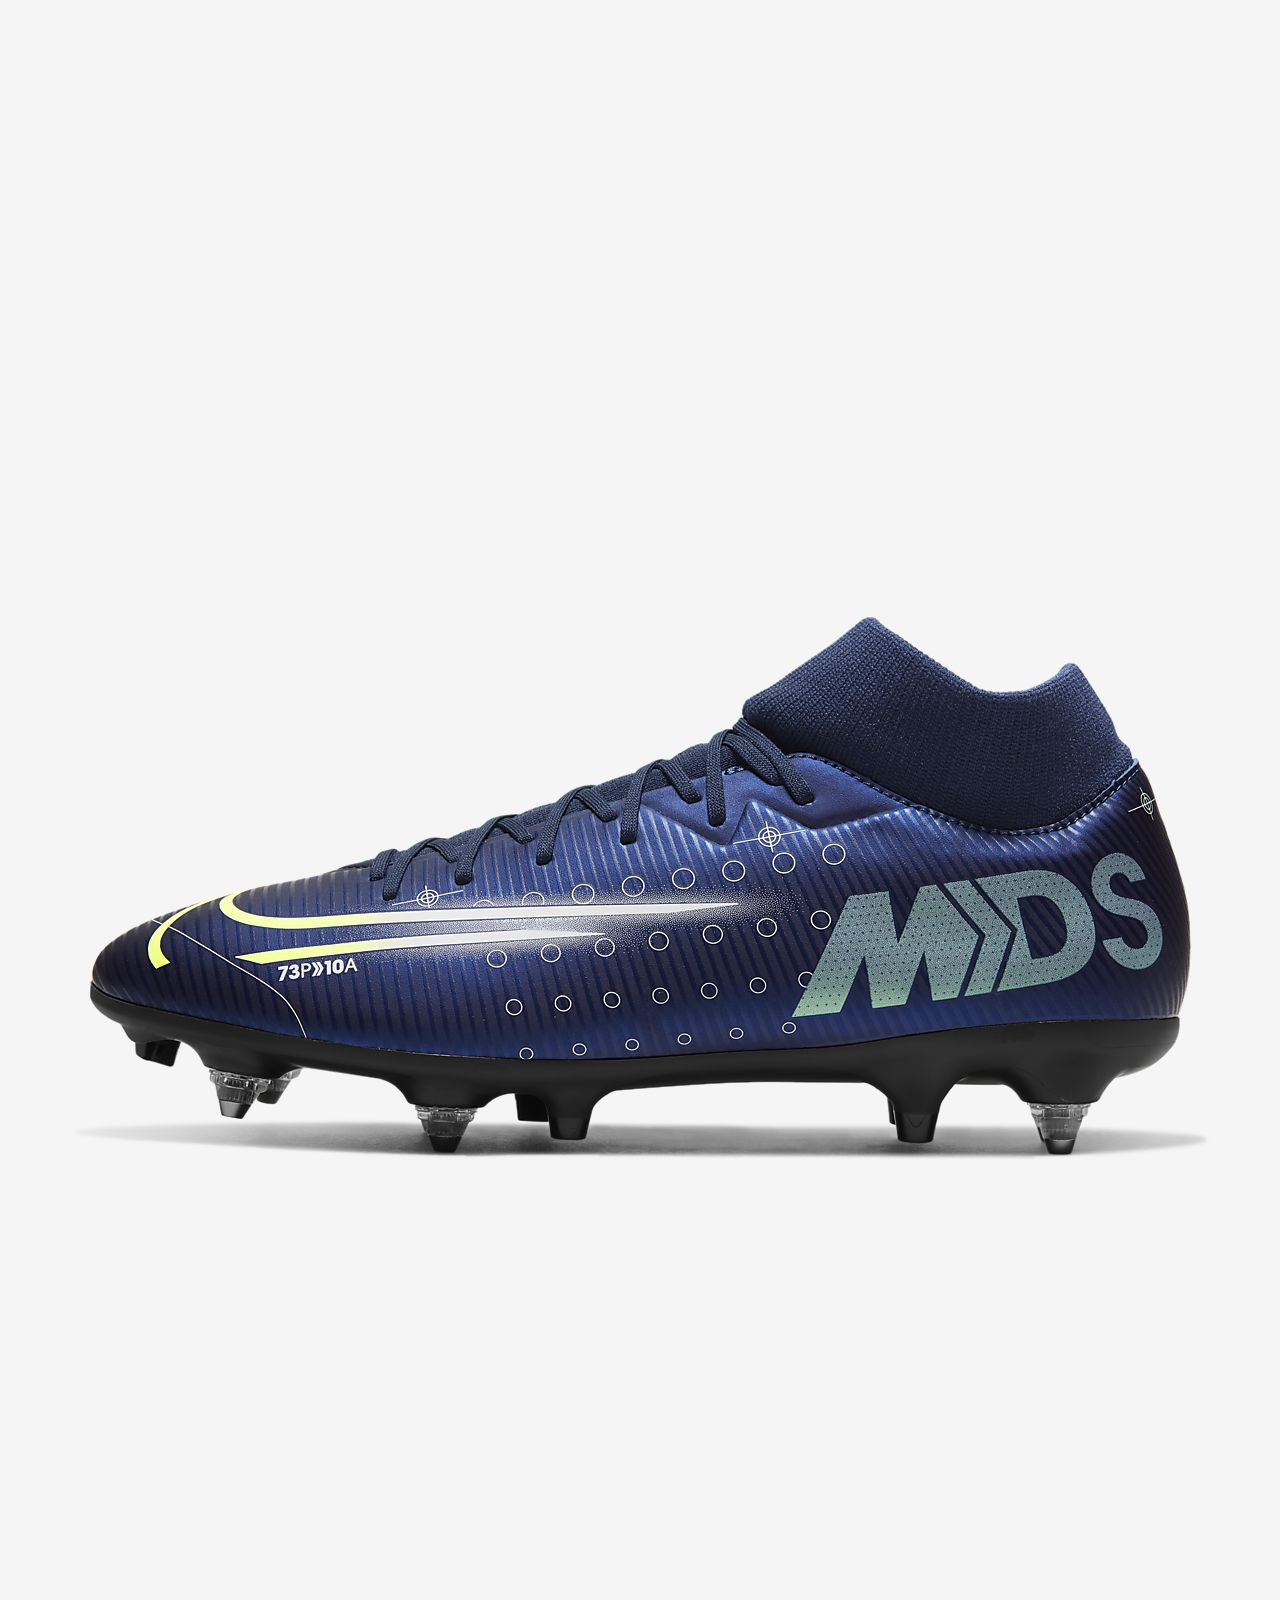 Nike Mercurial Superfly 7 Academy MDS SG-PRO Anti-Clog Traction Soft-Ground Football Boot